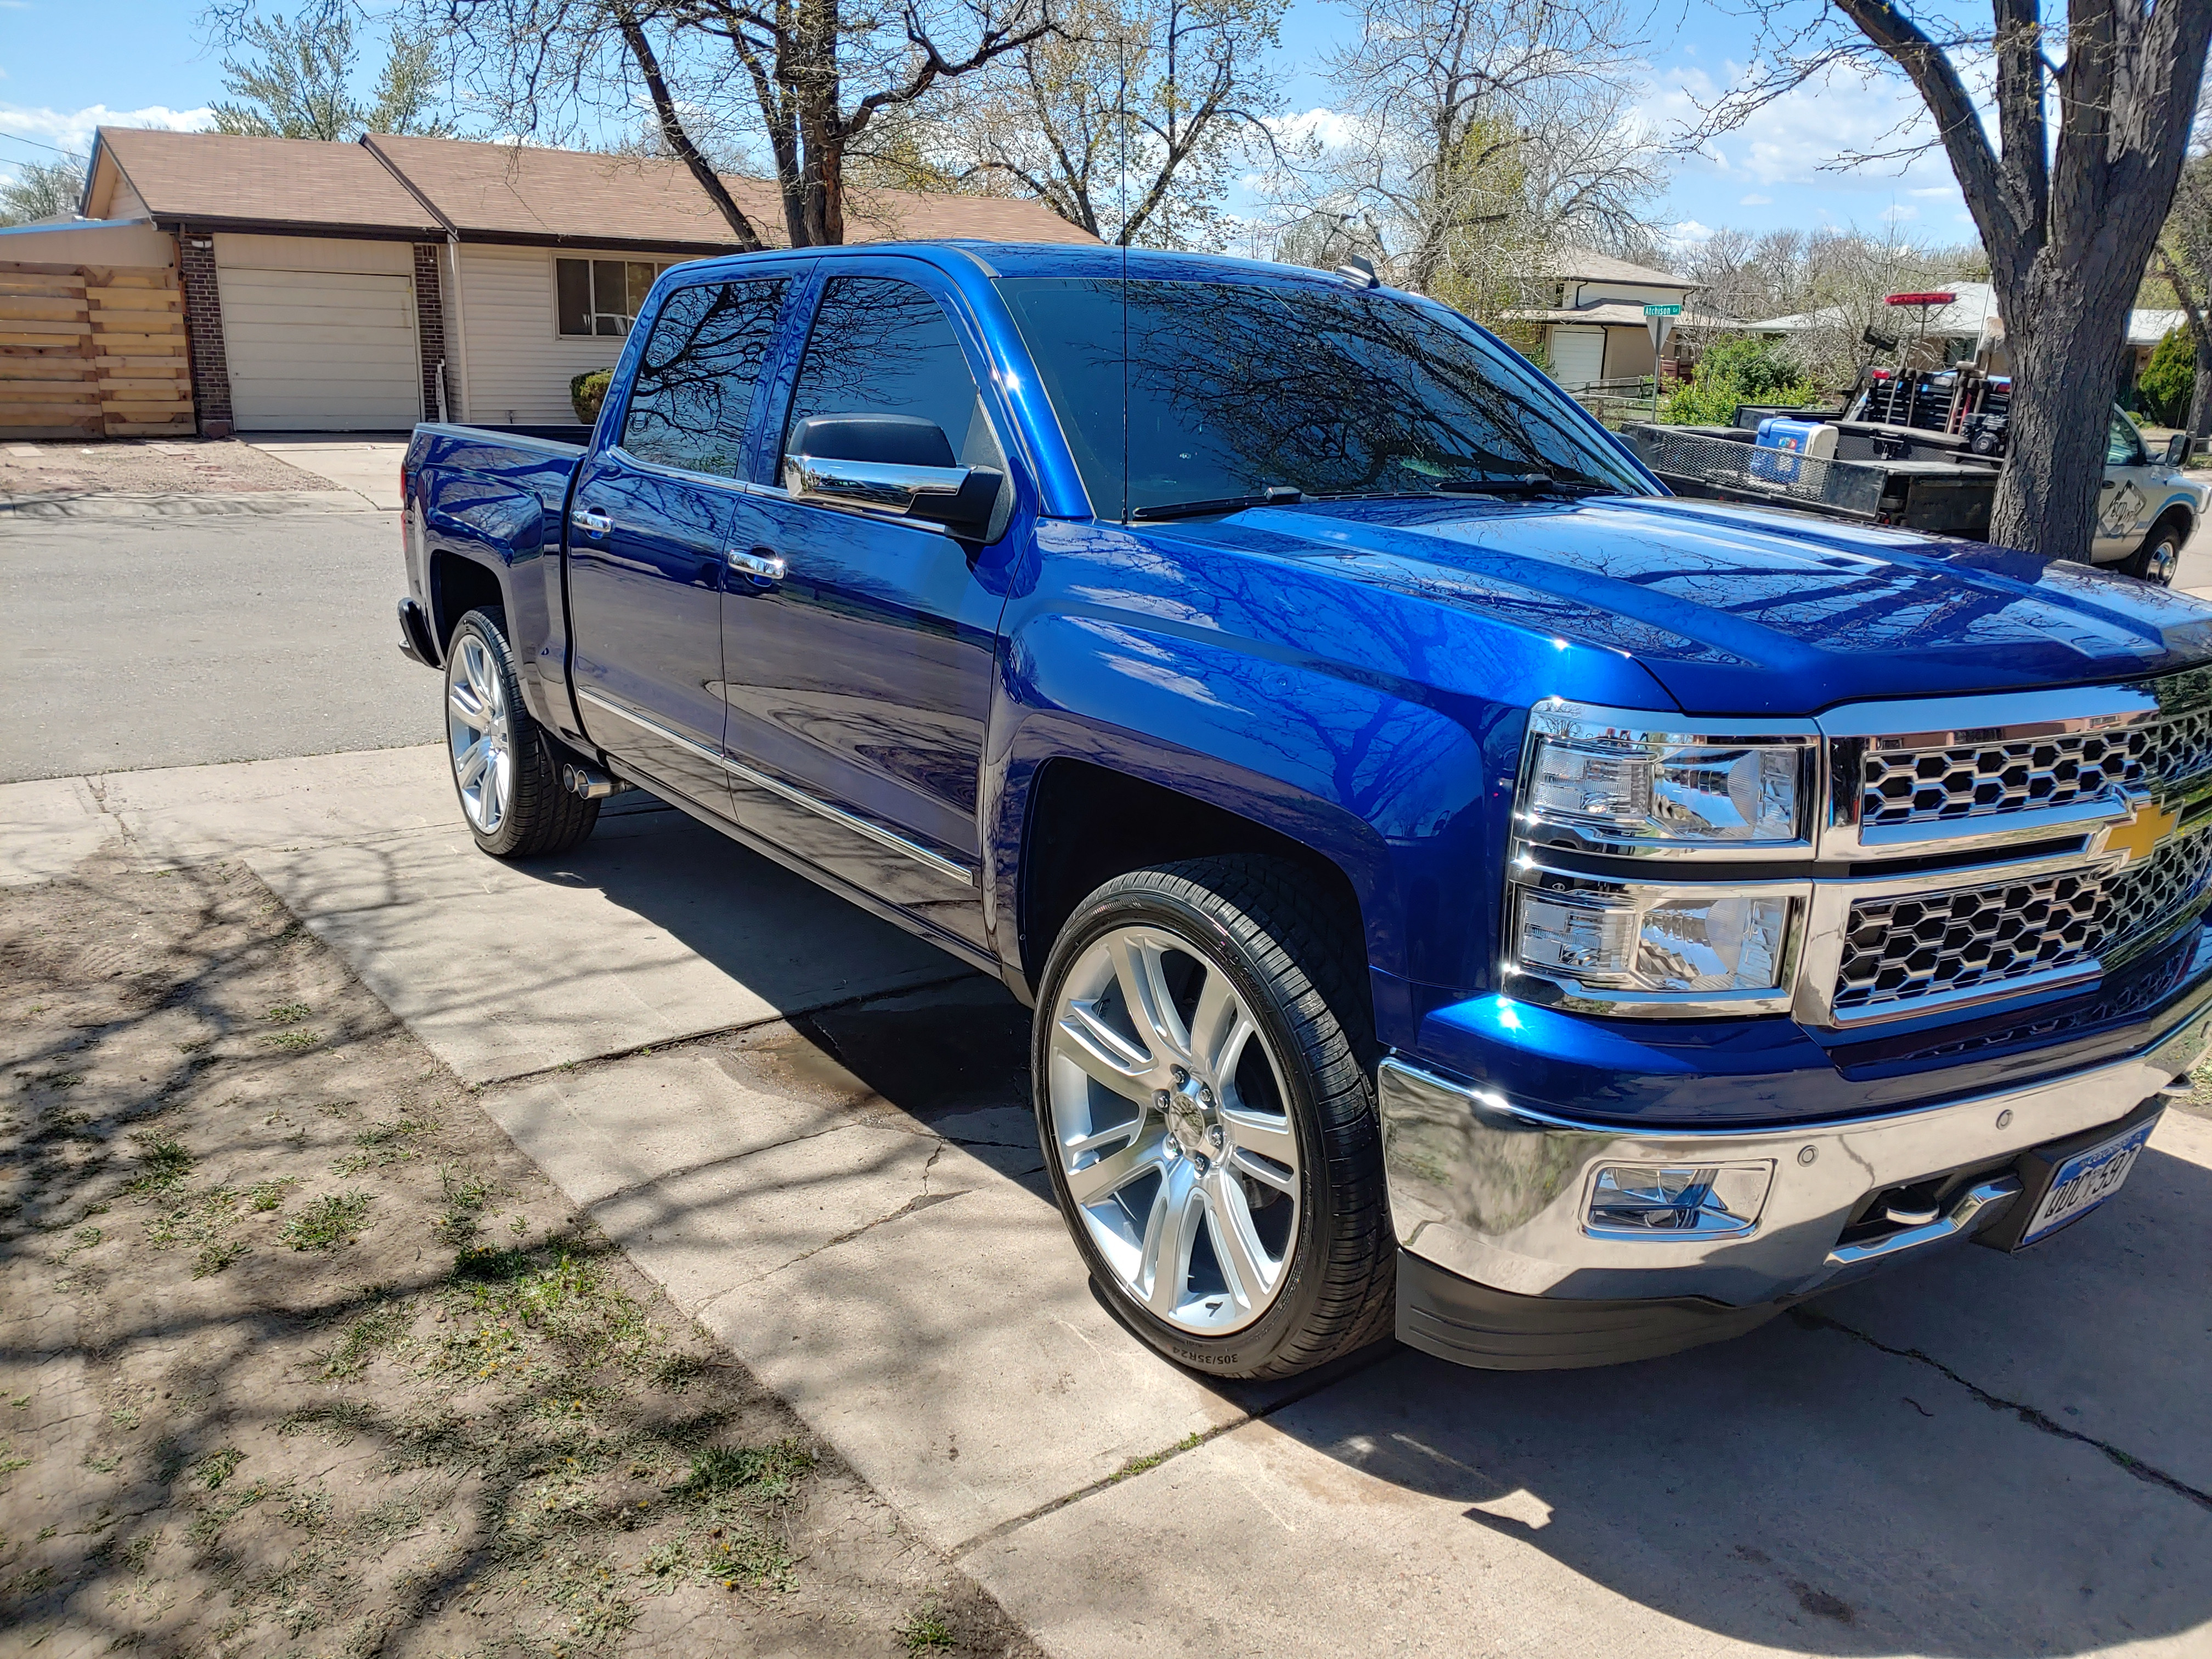 Exterior Detail Truck/2 Row Suv